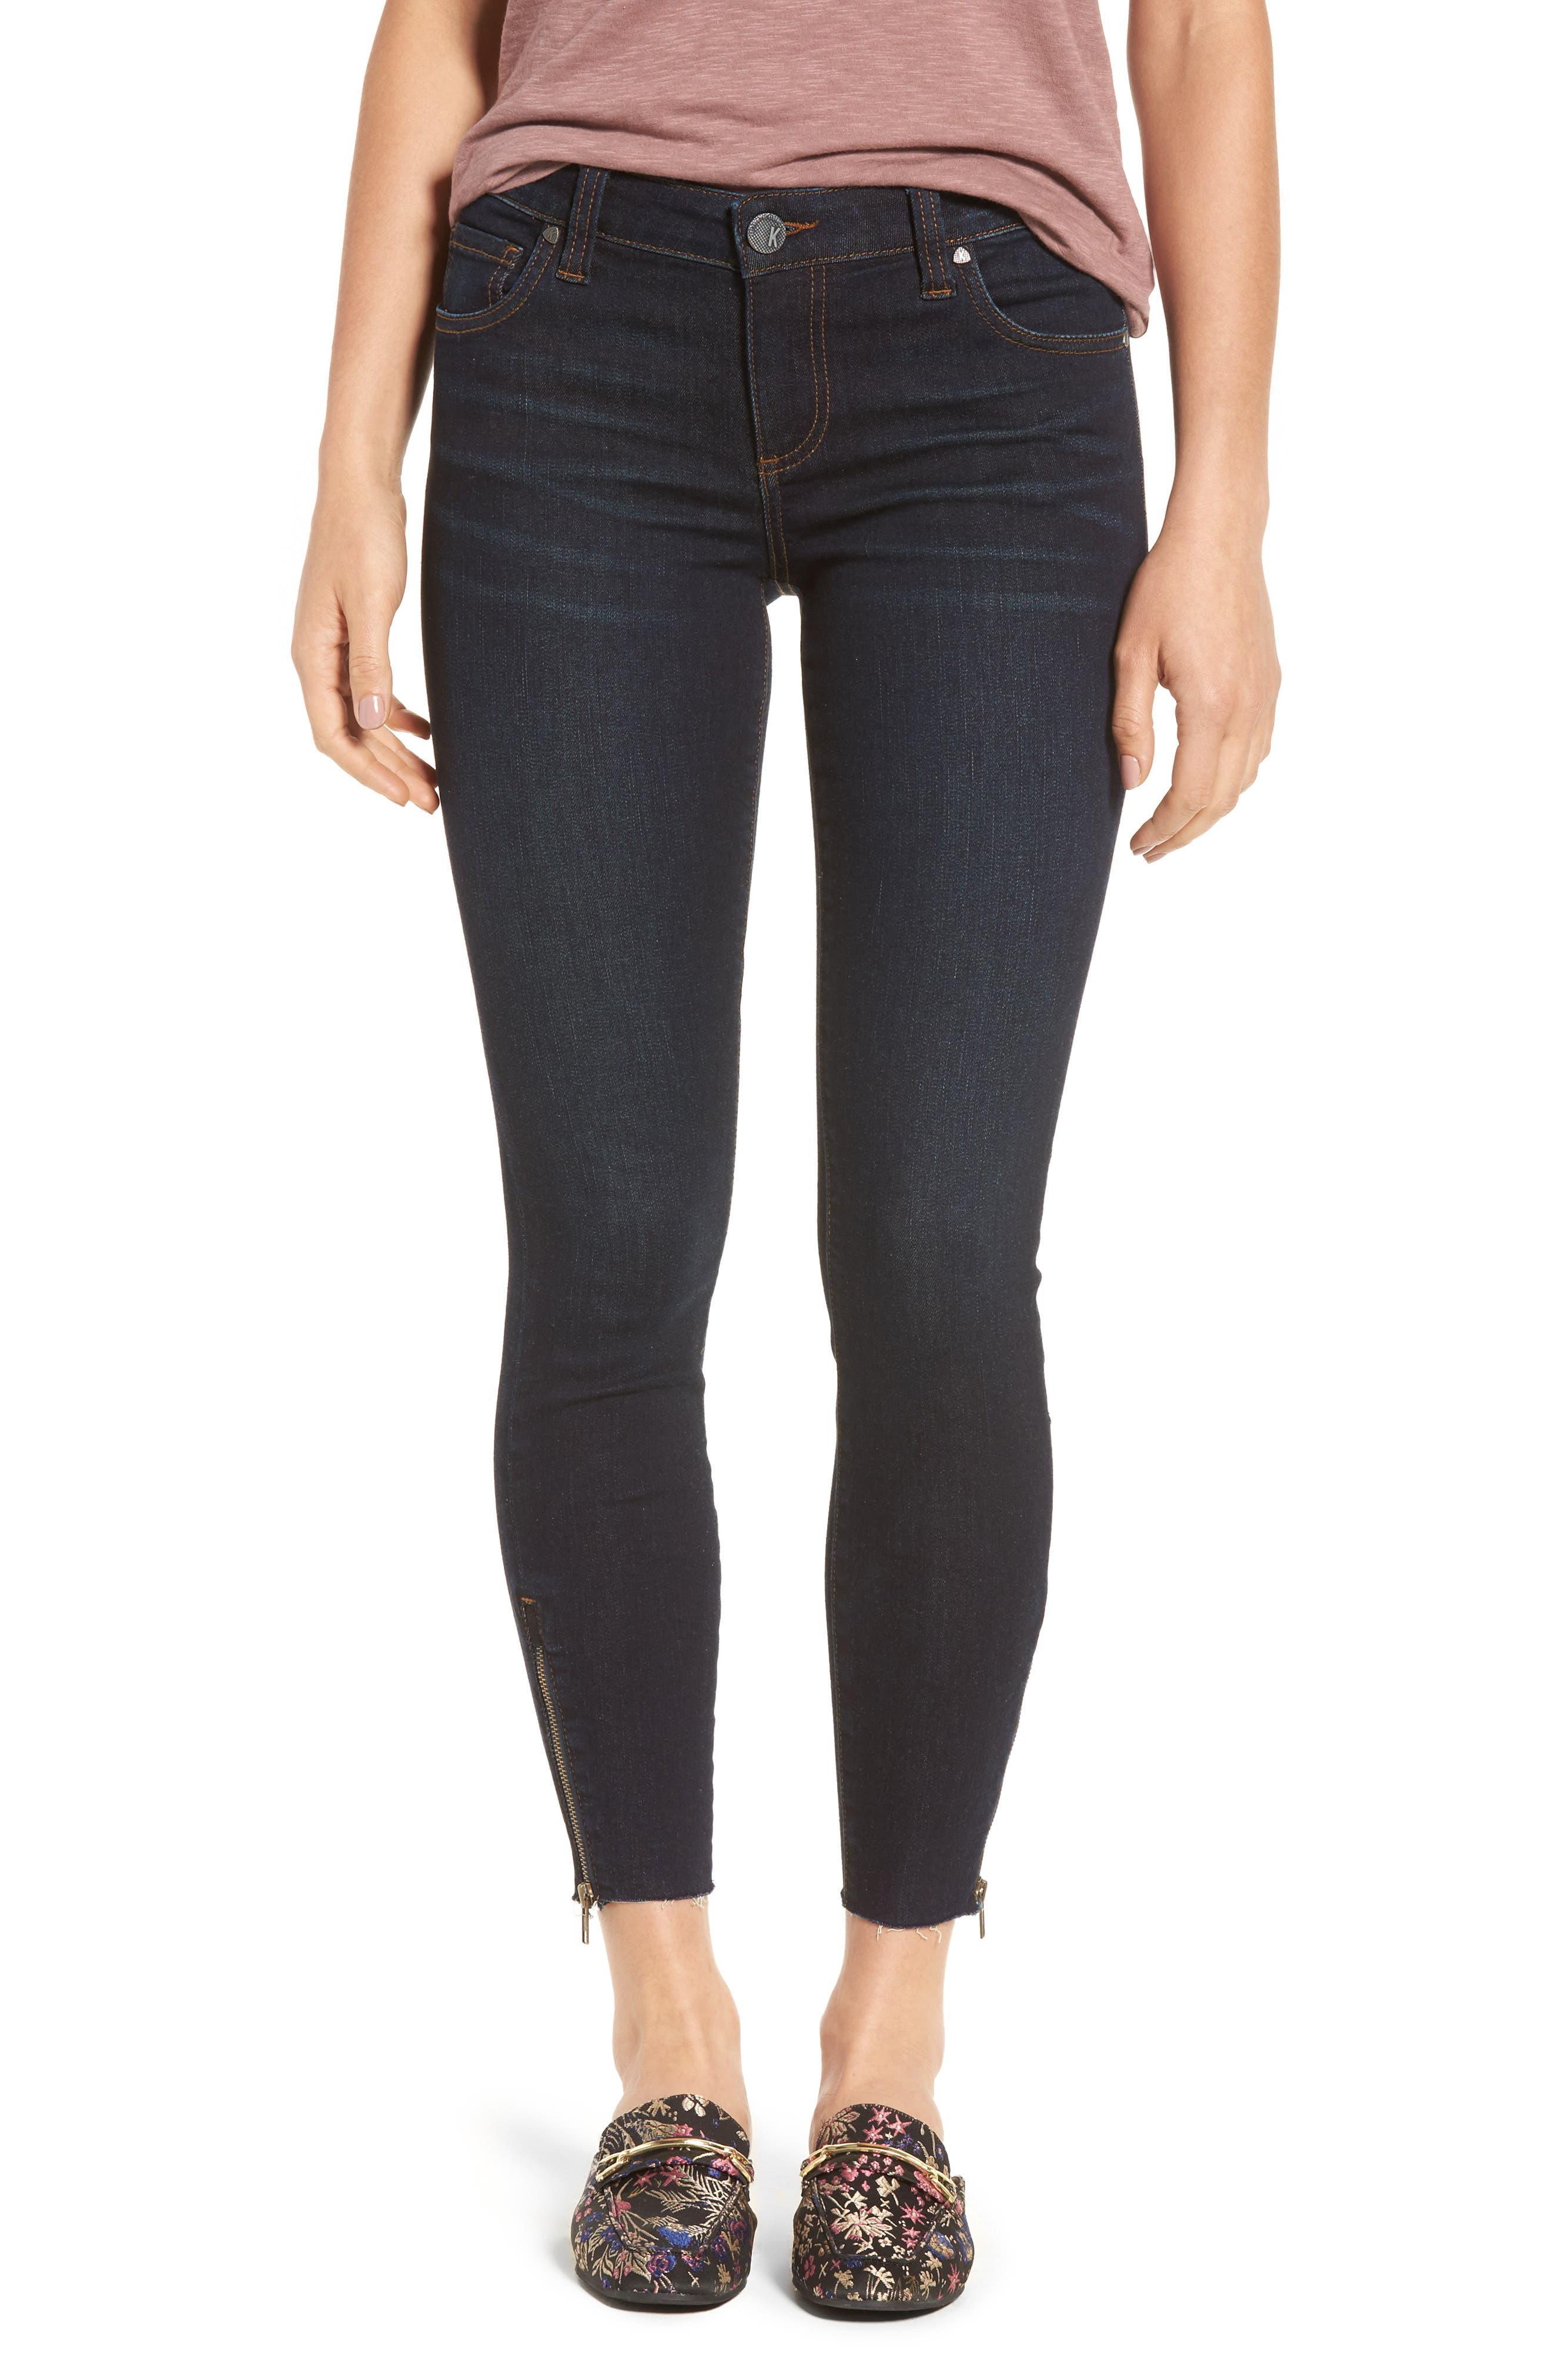 Main Image - KUT from the Kloth Connie Skinny Ankle Zip Hem Jeans (Euro Companionable)